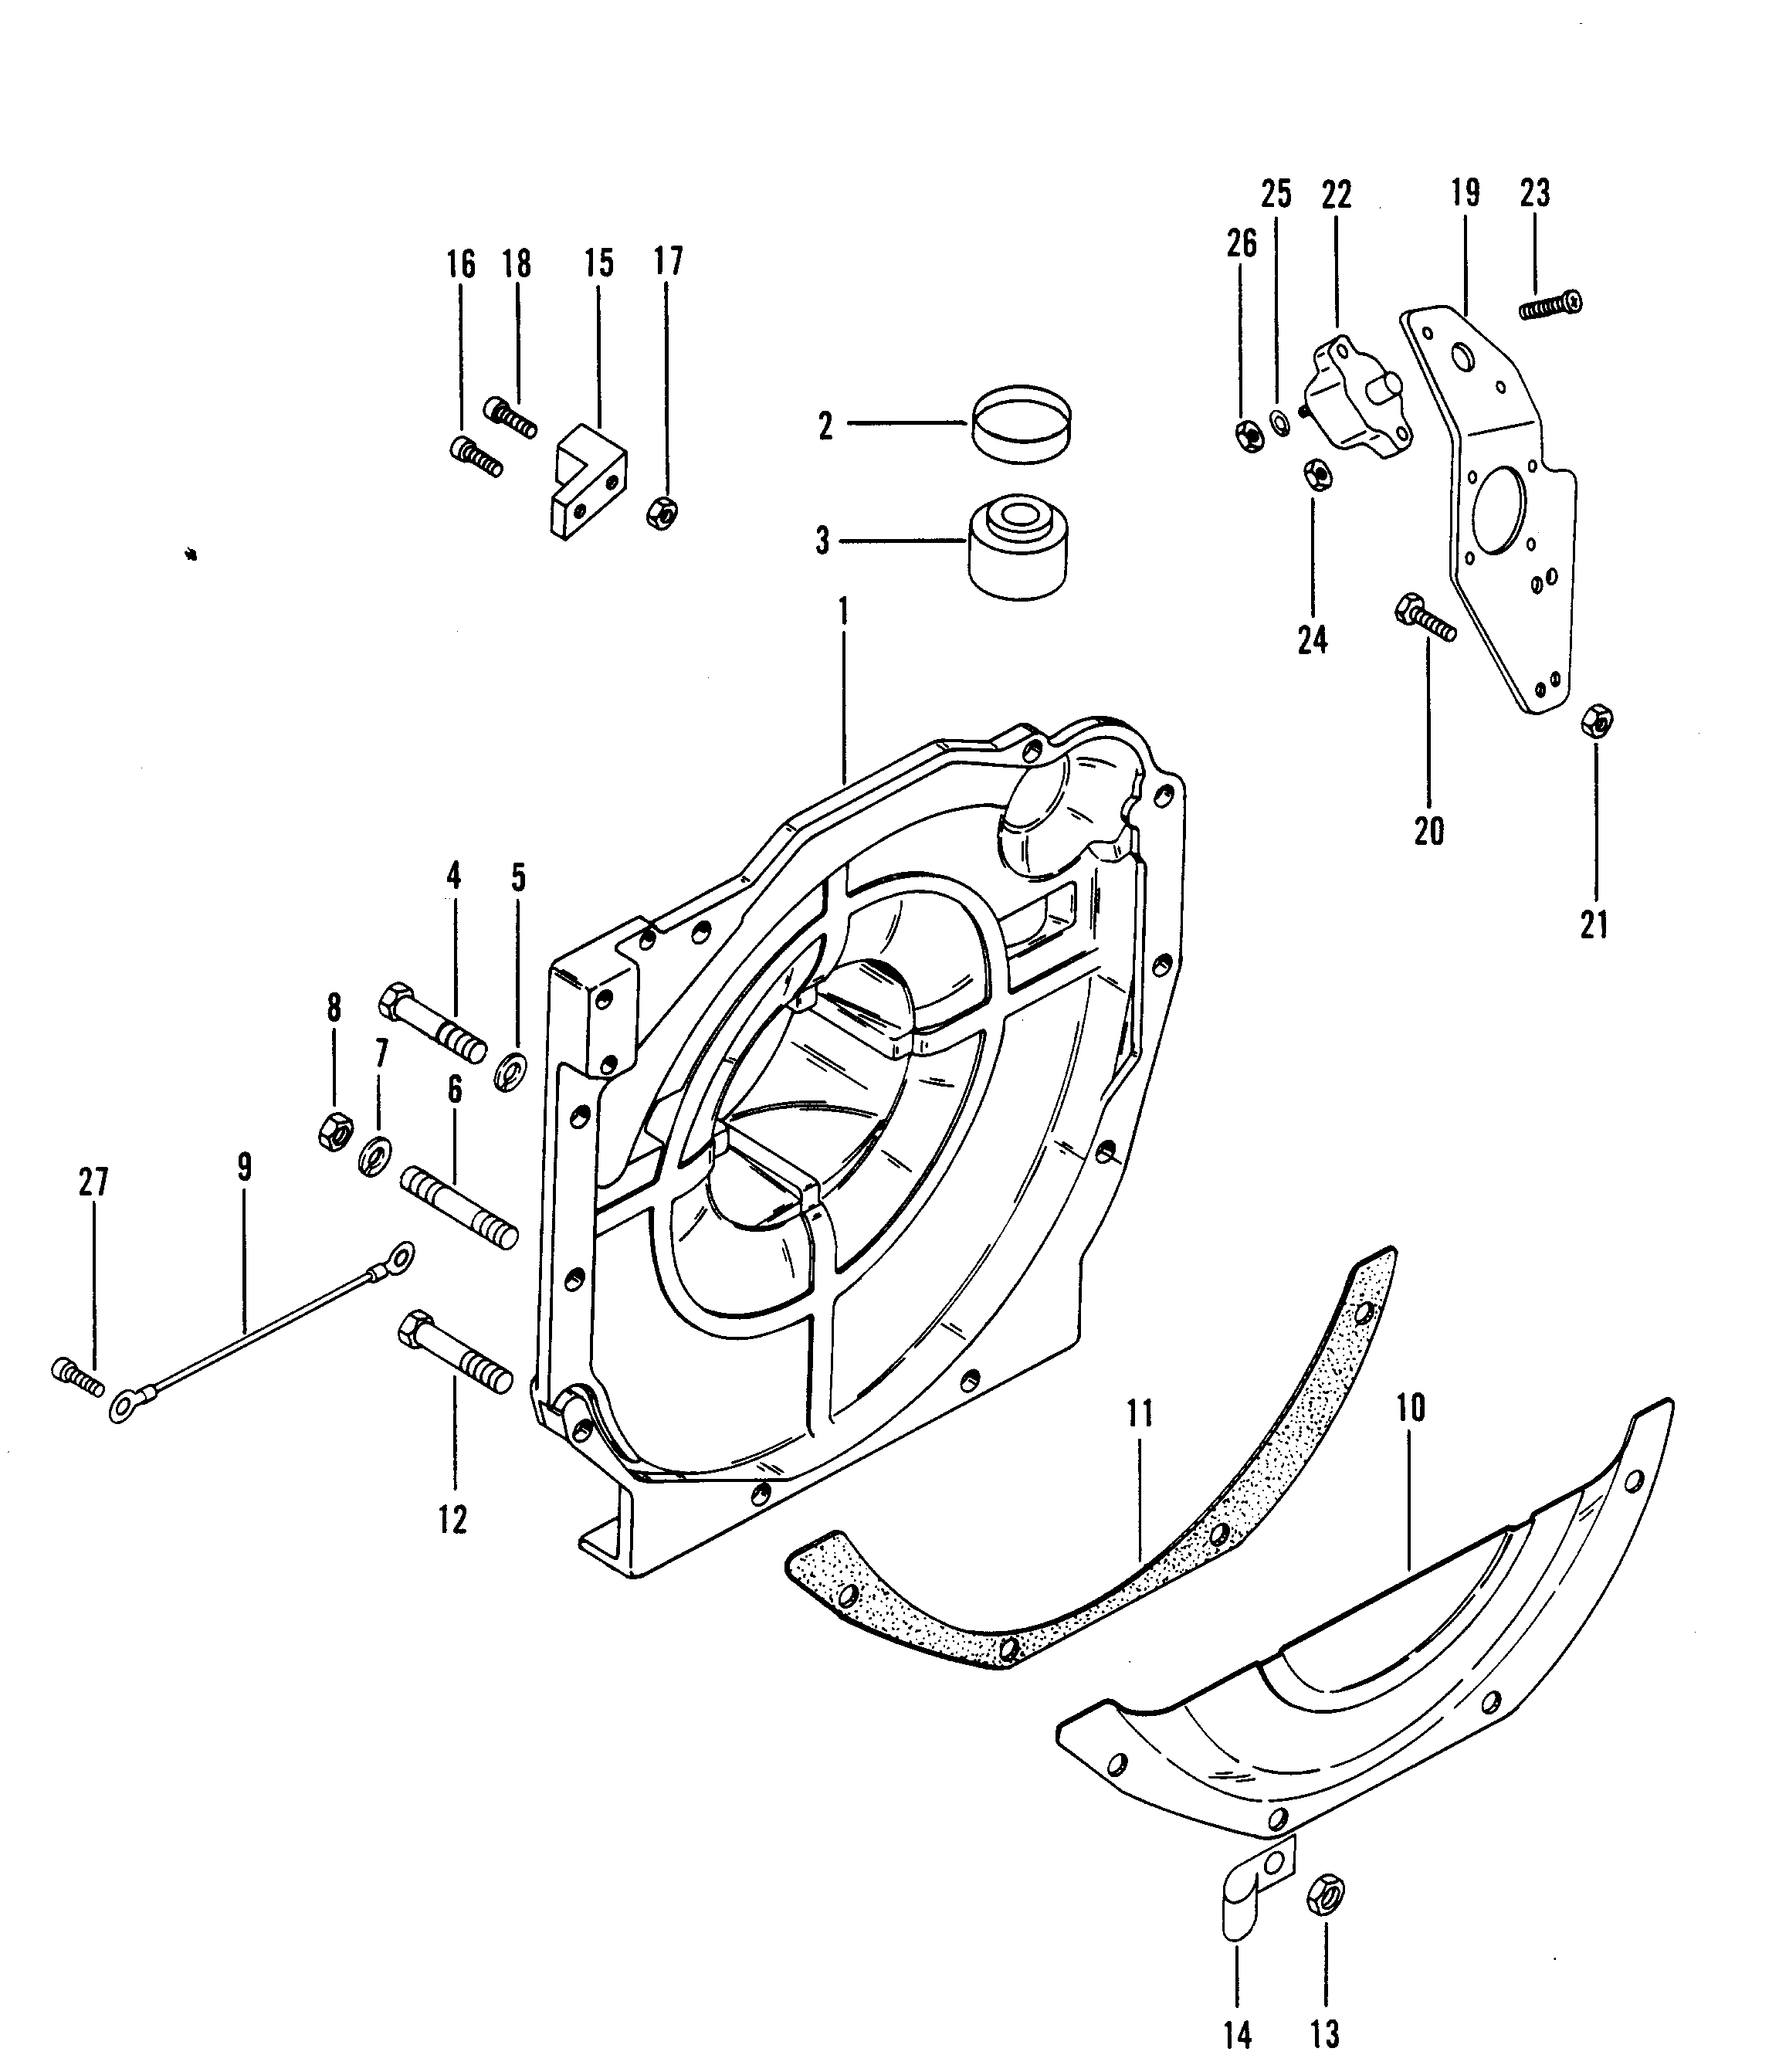 chris craft wiring diagram with Outboard Engine Covers Free Image For User on 1997 Holiday Rambler Wiring Diagram as well Volvo Penta Outdrive Impeller Location moreover J Boat Model Plans further Chris Craft Marine Engines further Fisher Plow Wiring Diagram 2000.